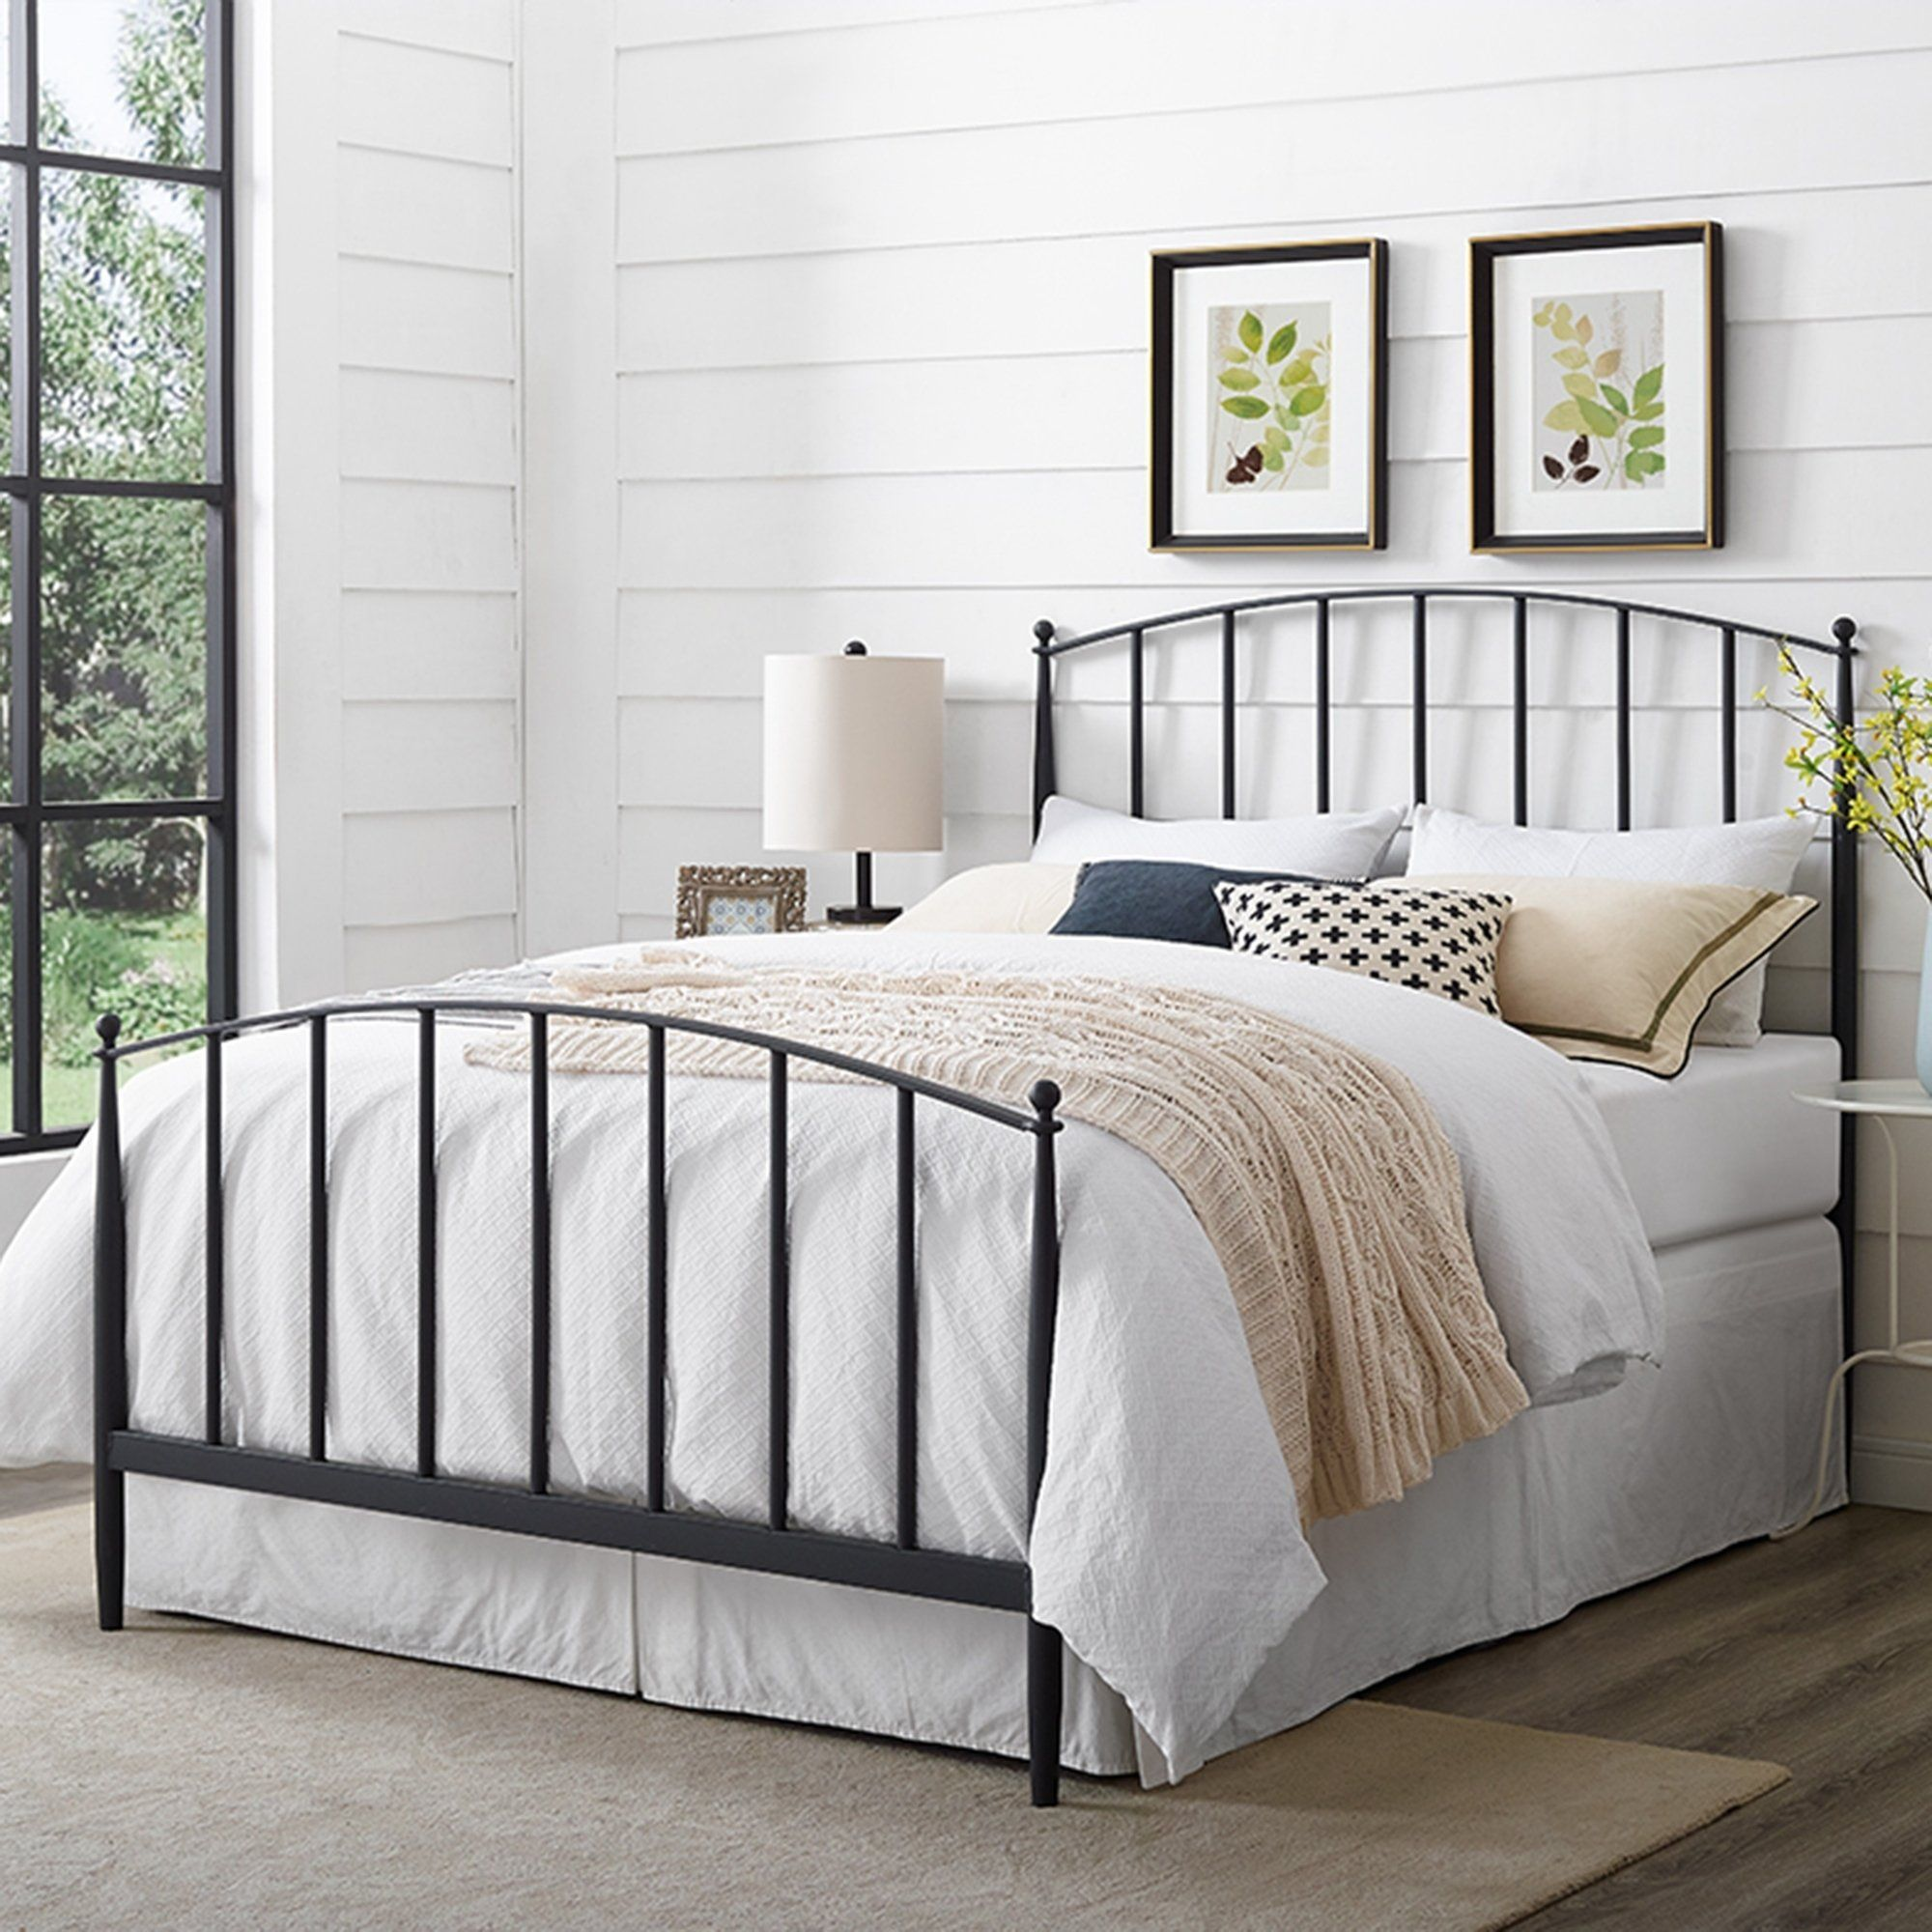 Overstock Com Online Shopping Bedding Furniture Electronics Jewelry Clothing More In 2021 Headboard And Footboard Black Bedding Furniture Metal headboard and footboard queen